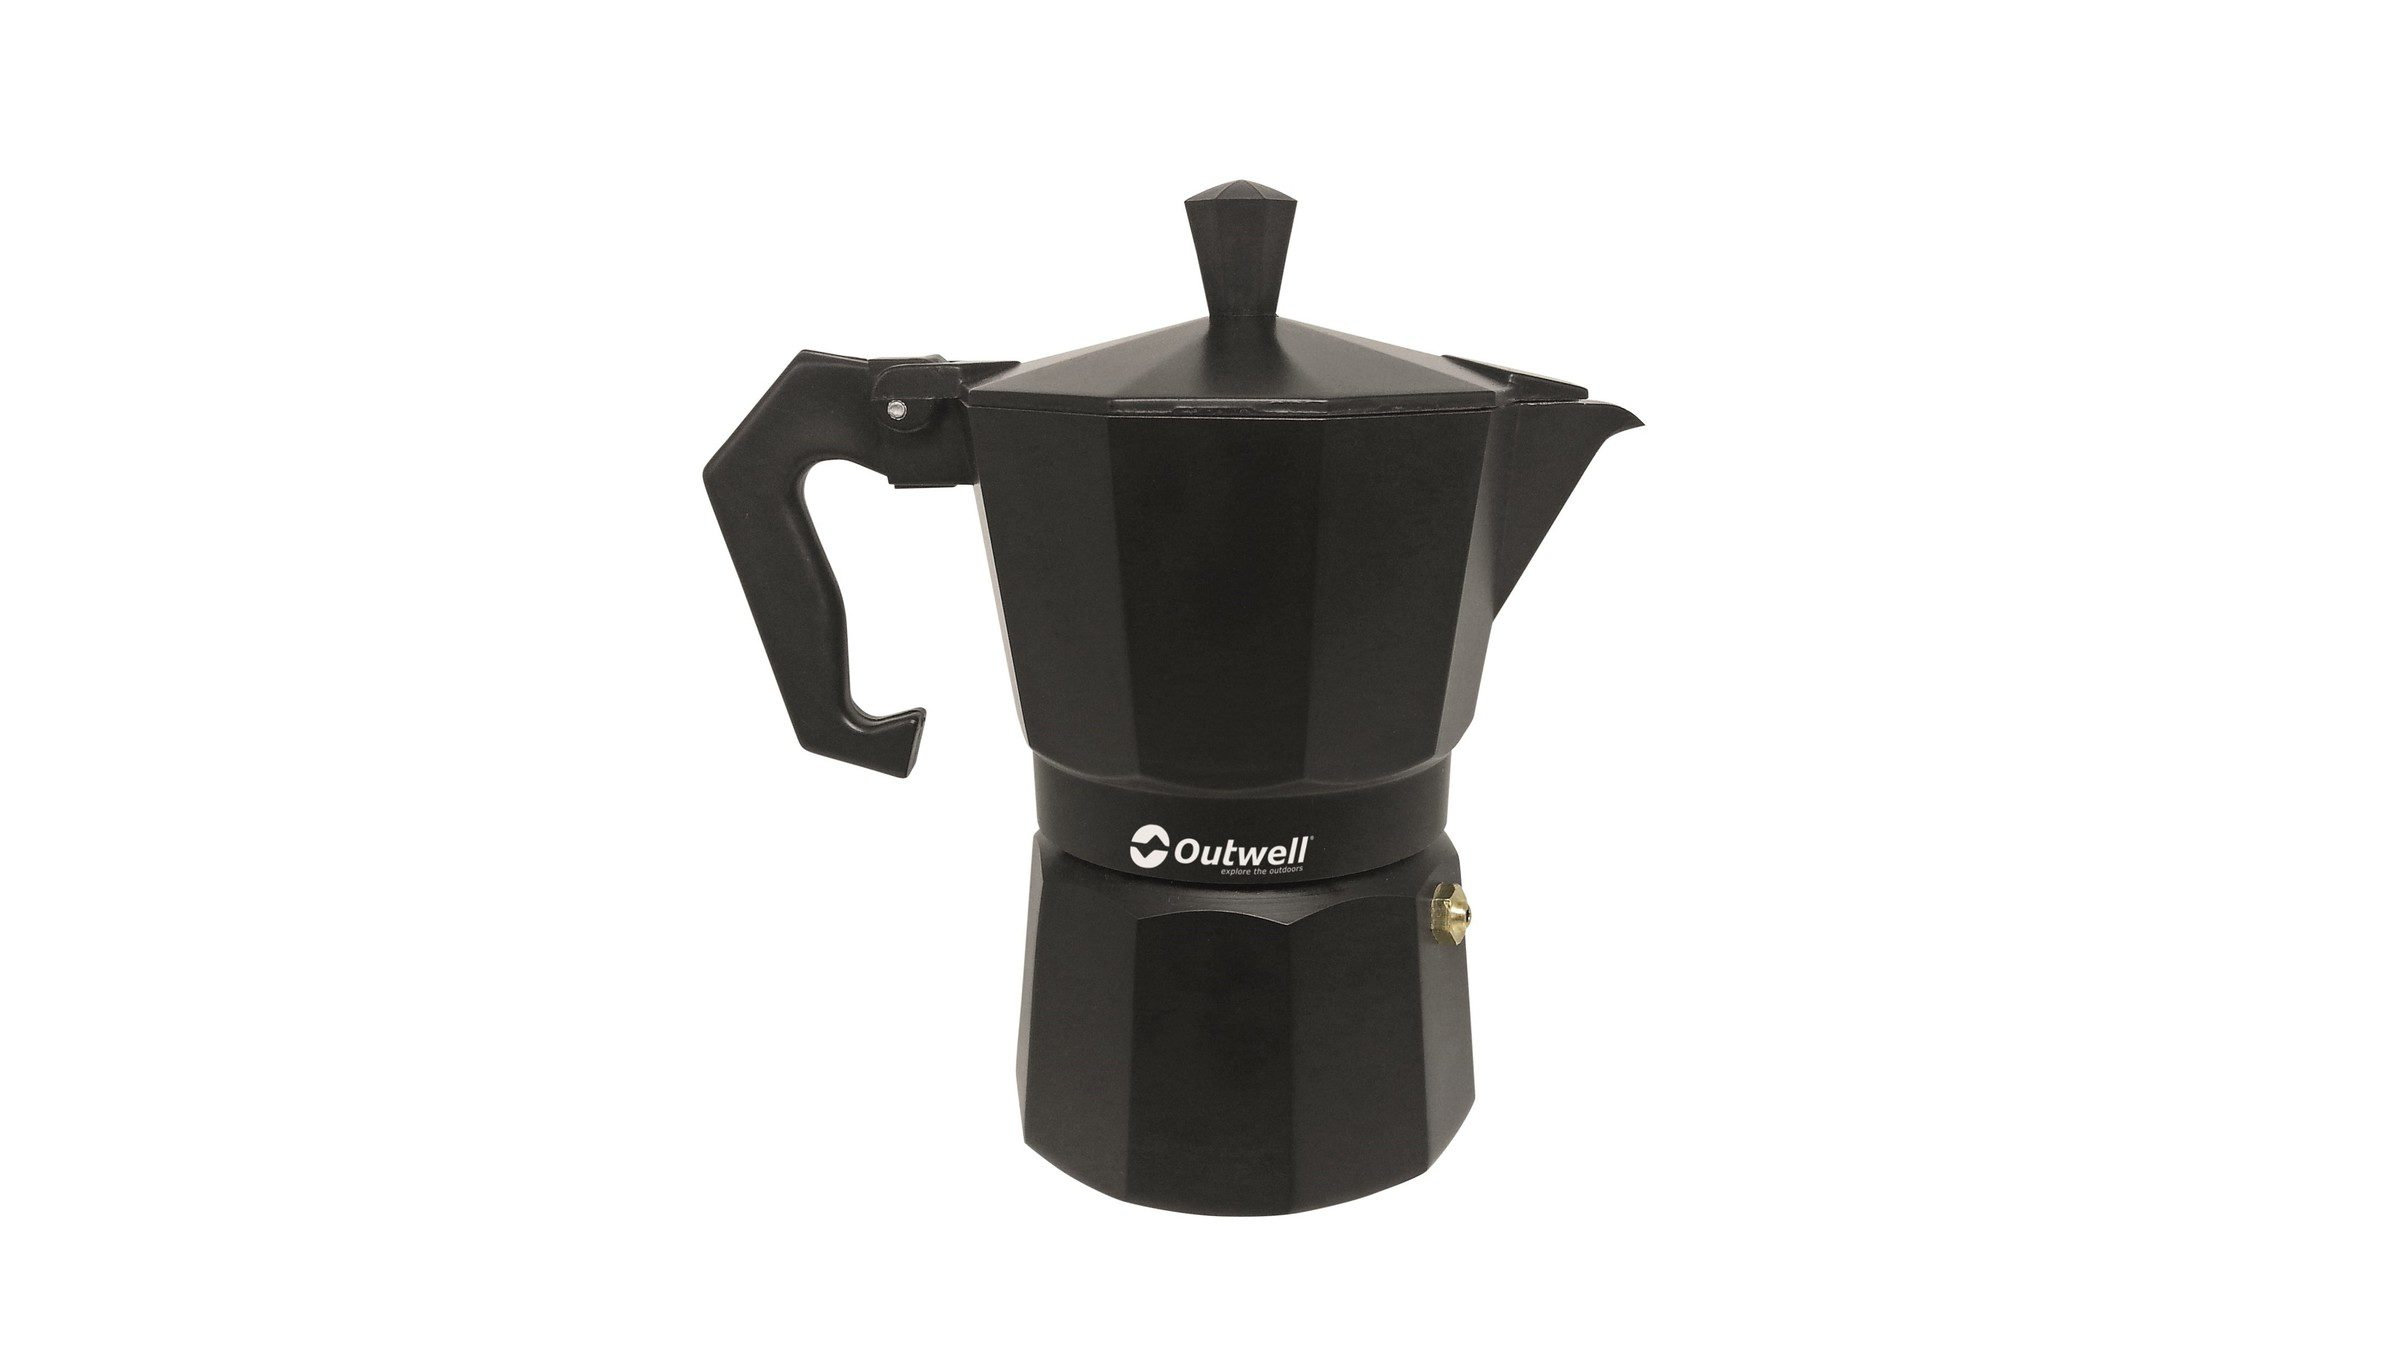 Outwell Alava Espresso Maker - 2 cups